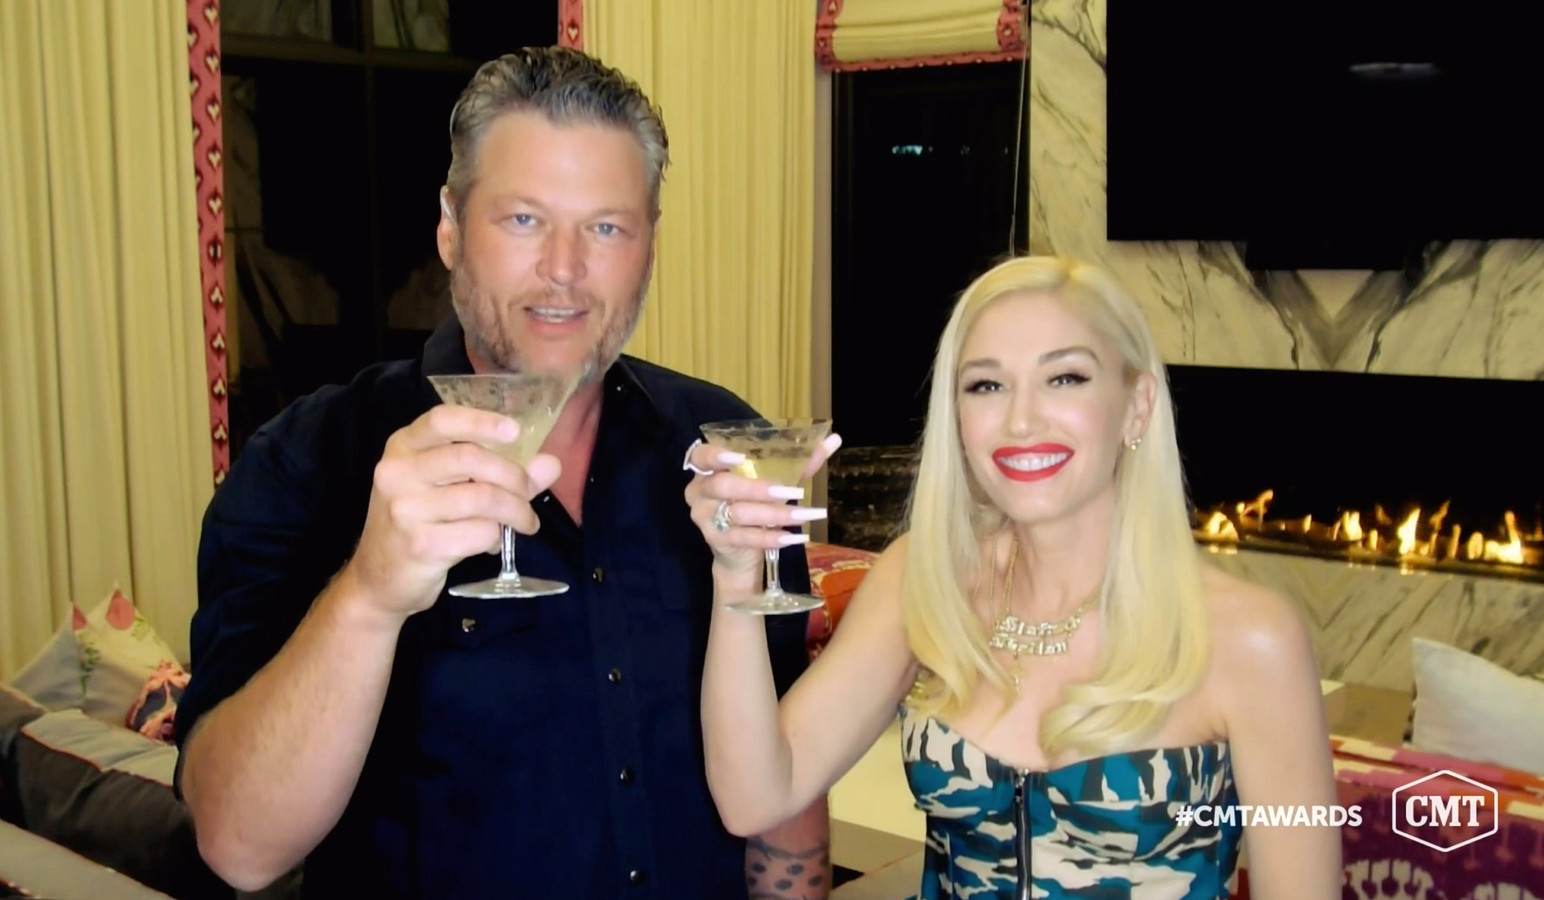 In this video image provided by CMT, Blake Shelton, left, and Gwen Stefani  toast as they accept the collaboration of the year award for âĜNobody But Youâĝ during the Country Music Television awards airing on Wednesday, Oct. 21, 2020. (CMT via AP)